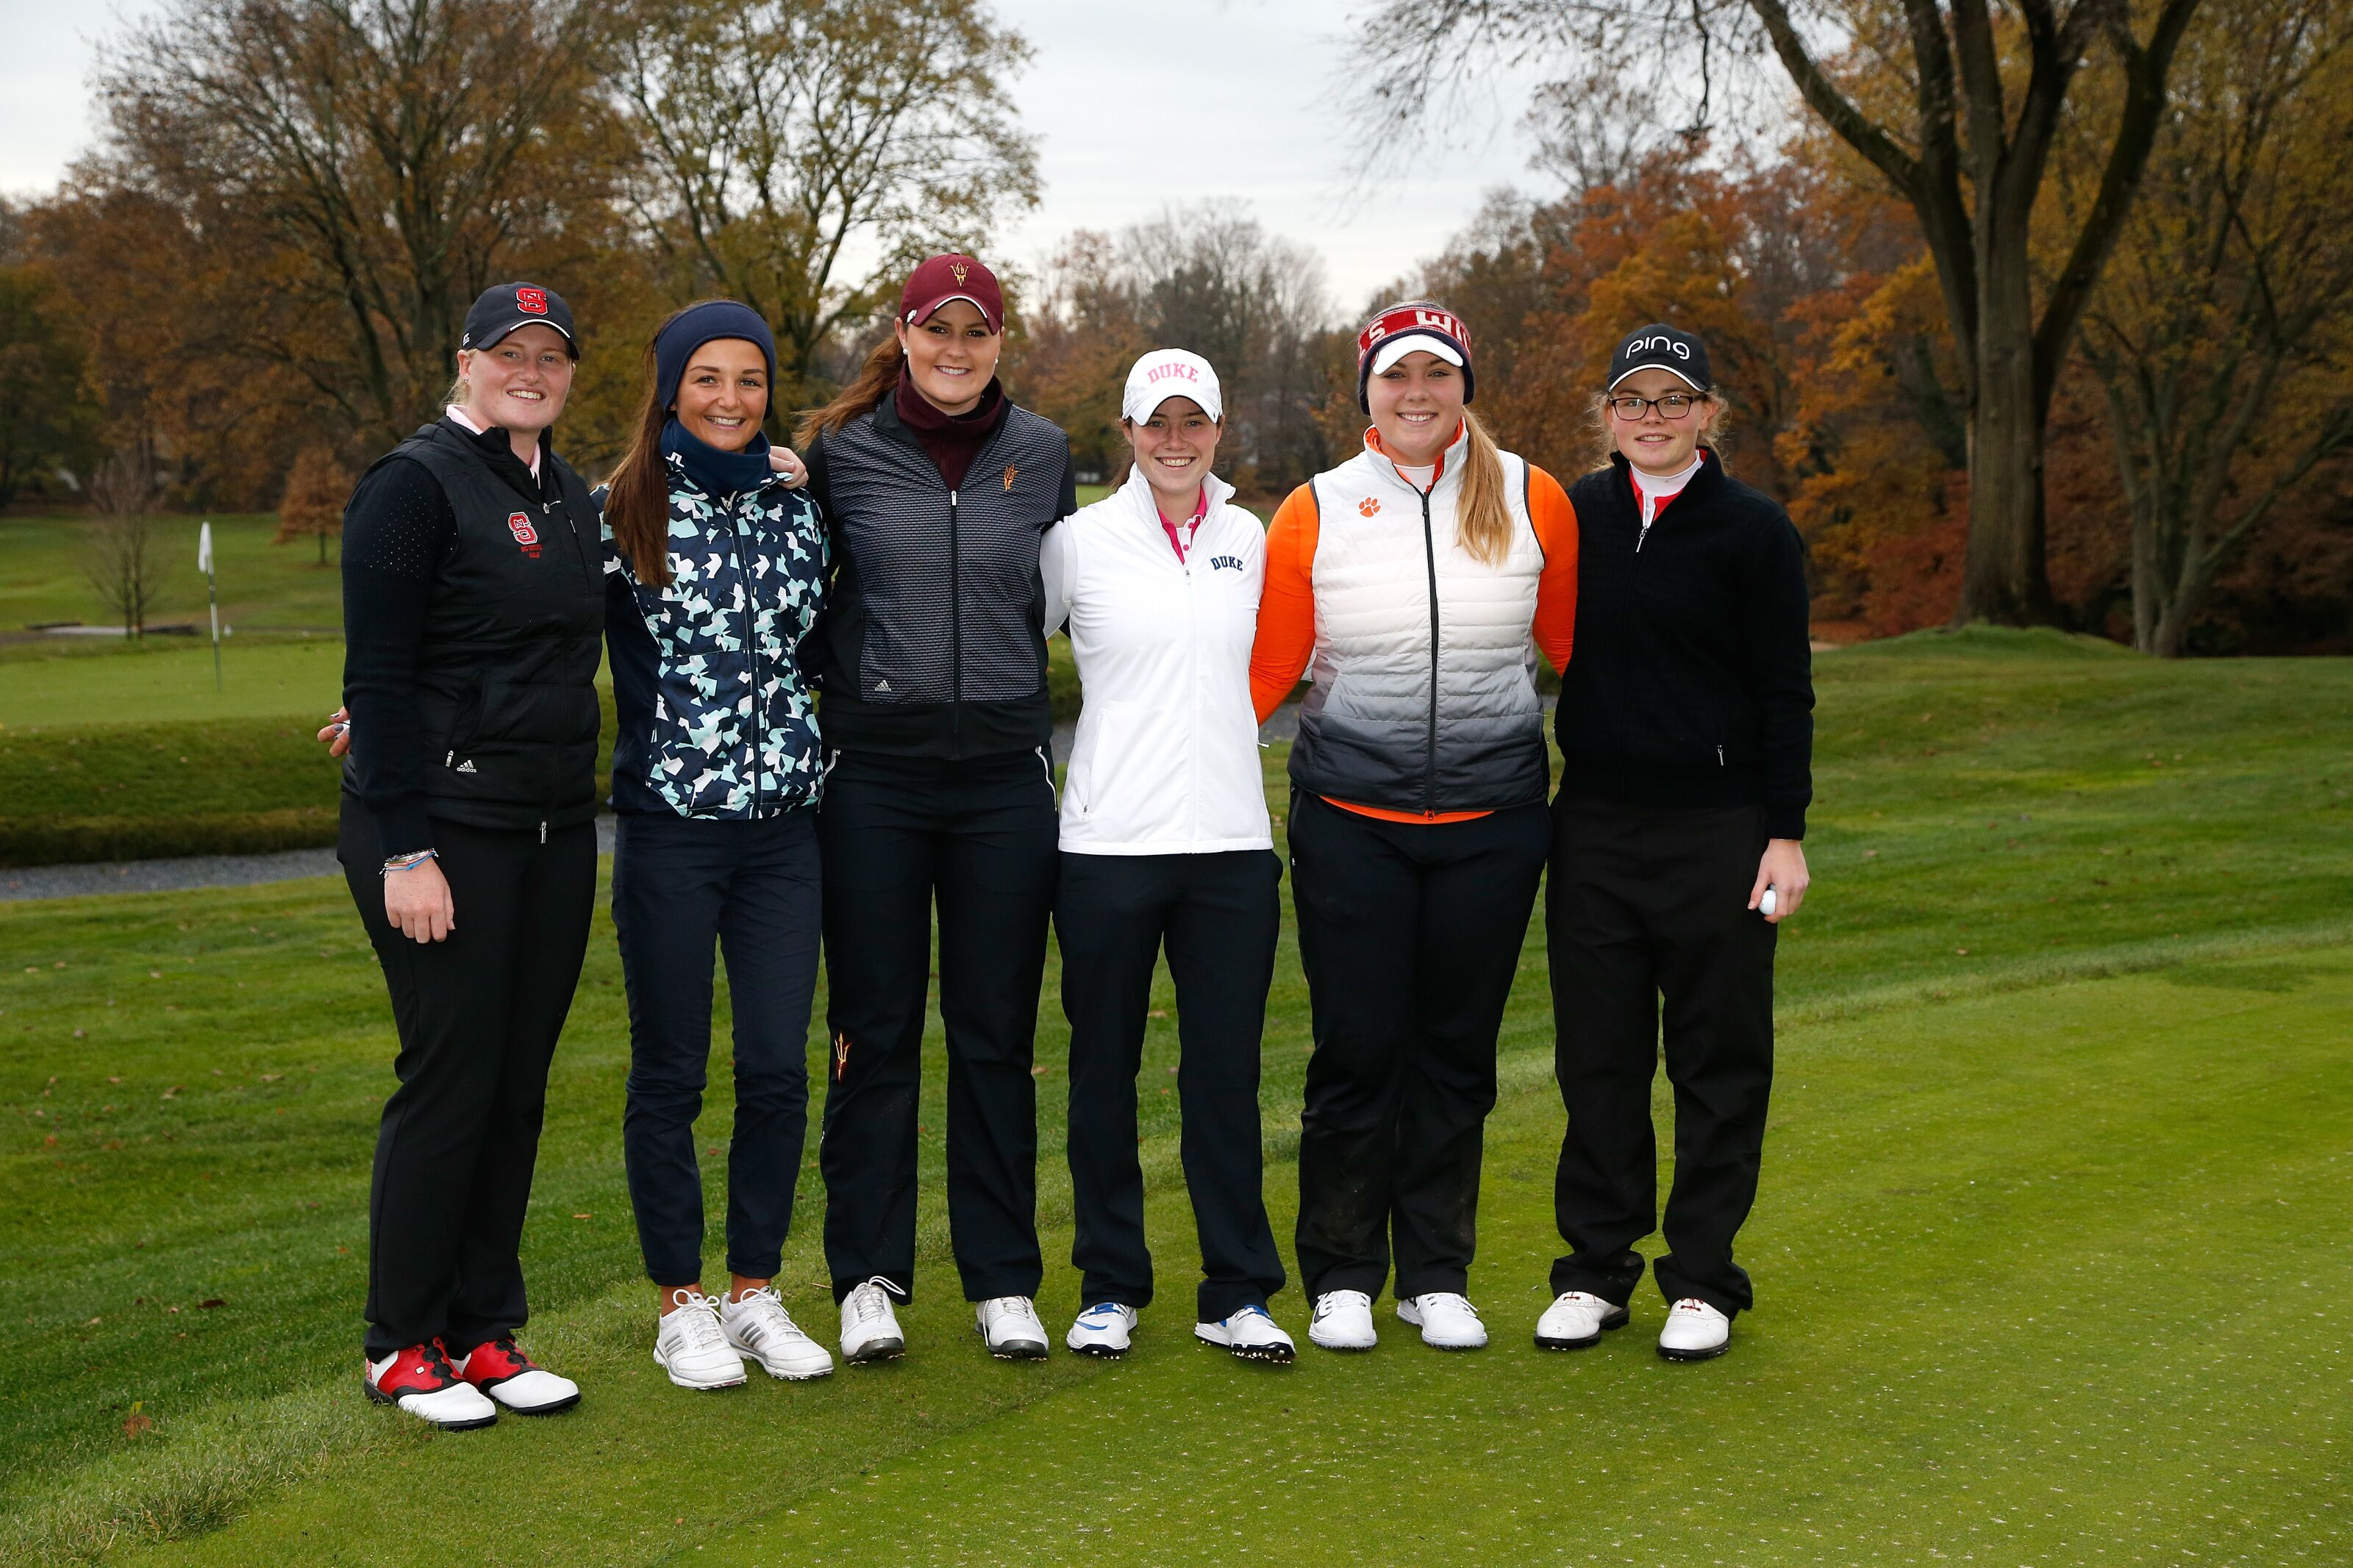 Curtis Cup 2018 GB&I Team: Ready to pull an upset against ...